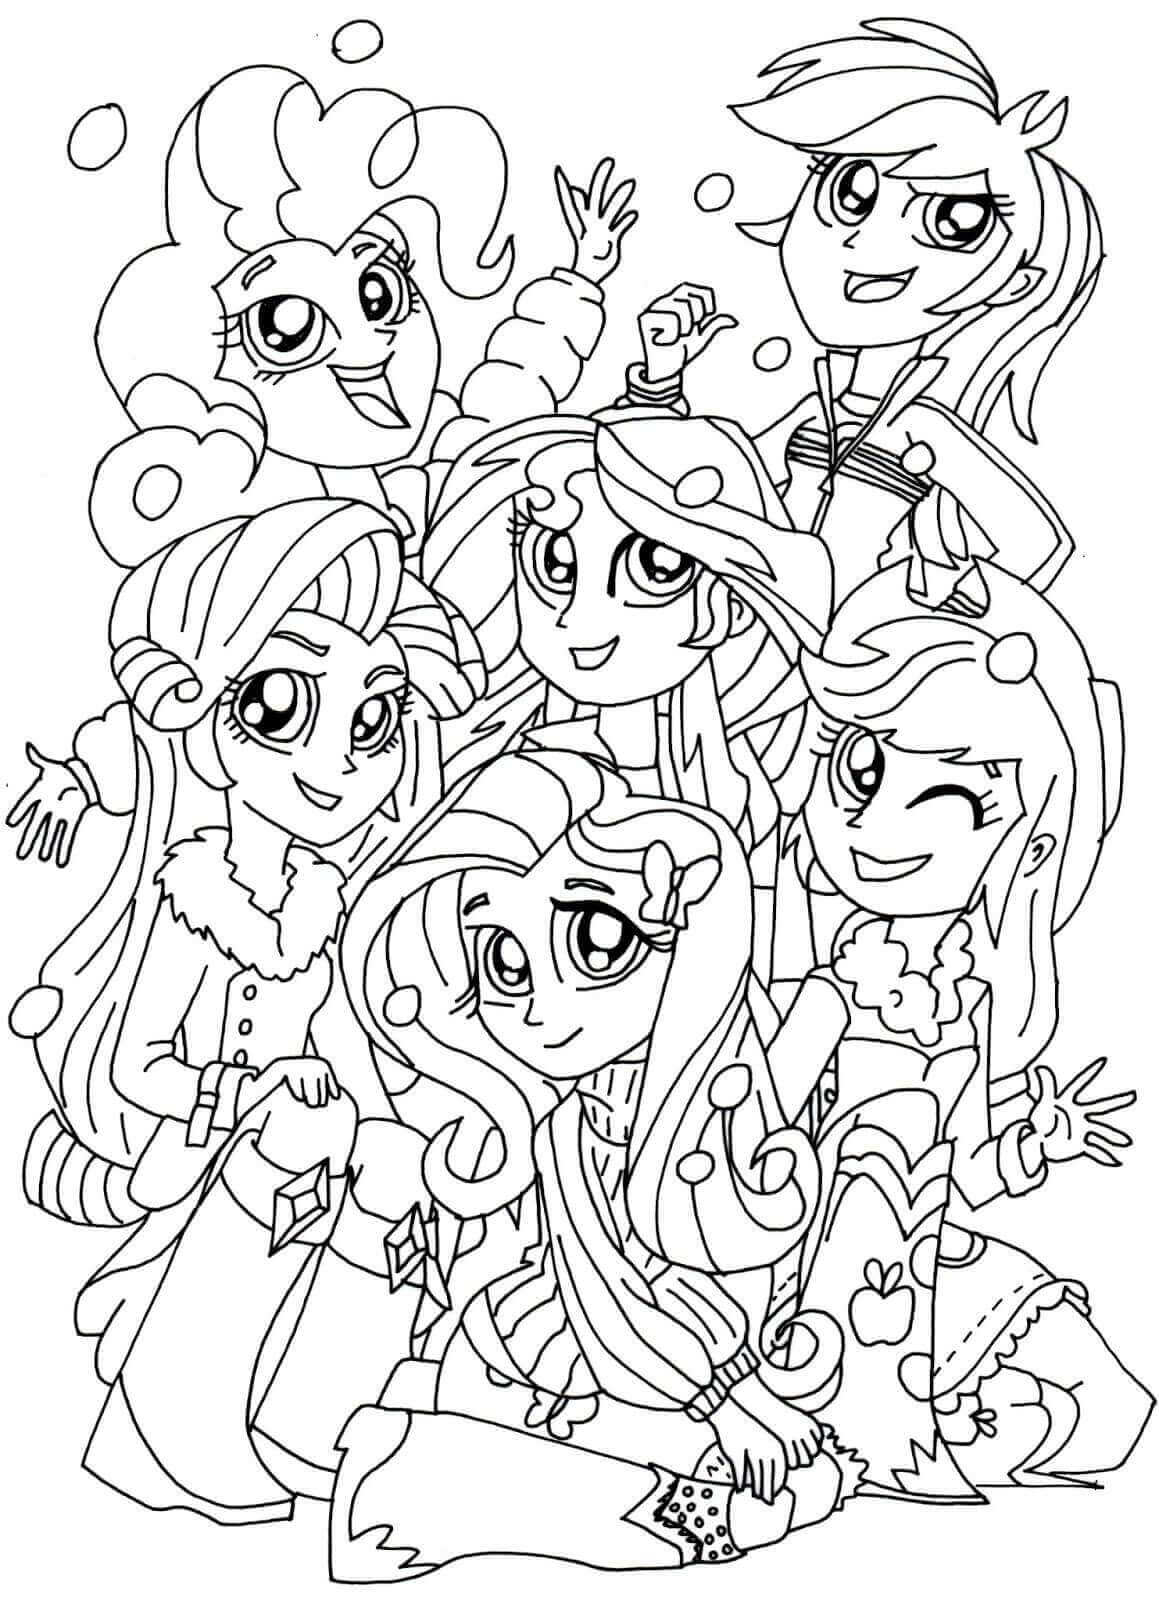 coloring pages for little girls little girl coloring pages getcoloringpagescom for pages little coloring girls